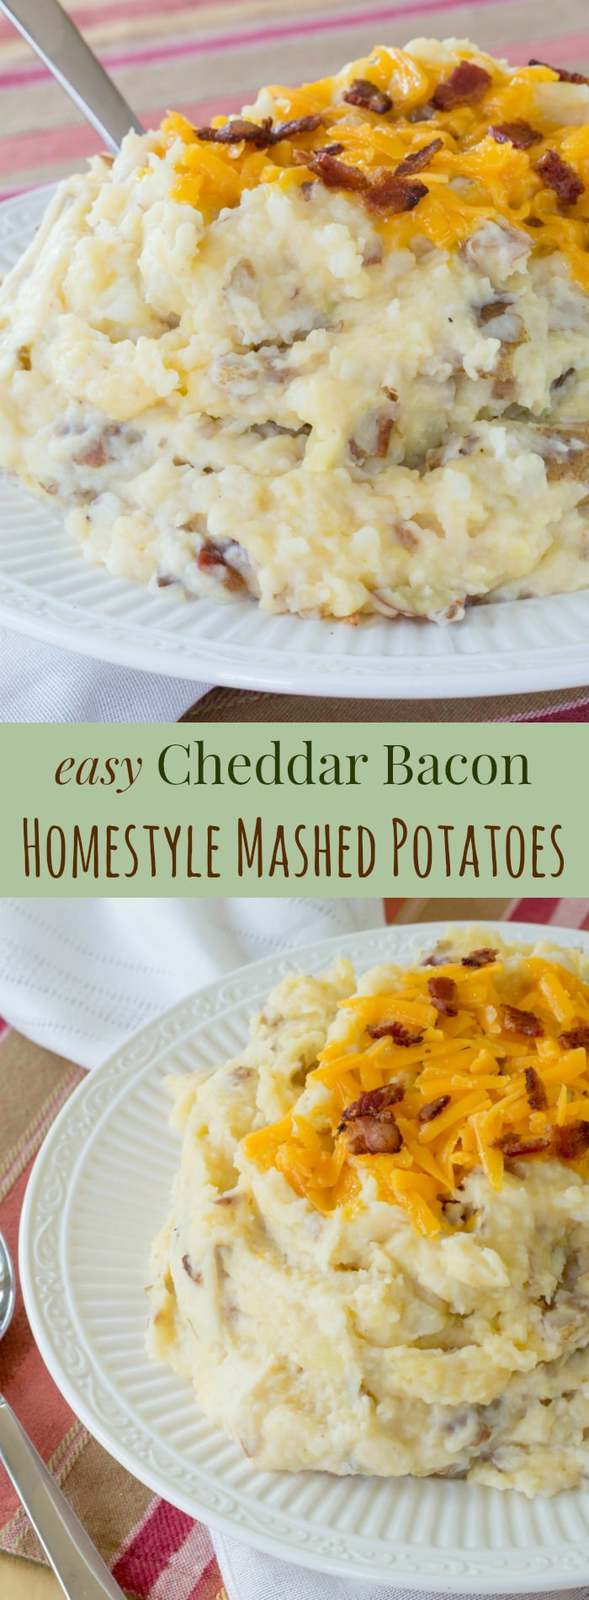 Homestyle Cheddar Bacon Mashed Potatoes - an easy side dish recipe lightened up with Greek yogurt, but still loaded with bacon and cheese. These cheesy bacon mashed potatoes will be a family favorite! #mashedpotatoes #bacon #glutenfree